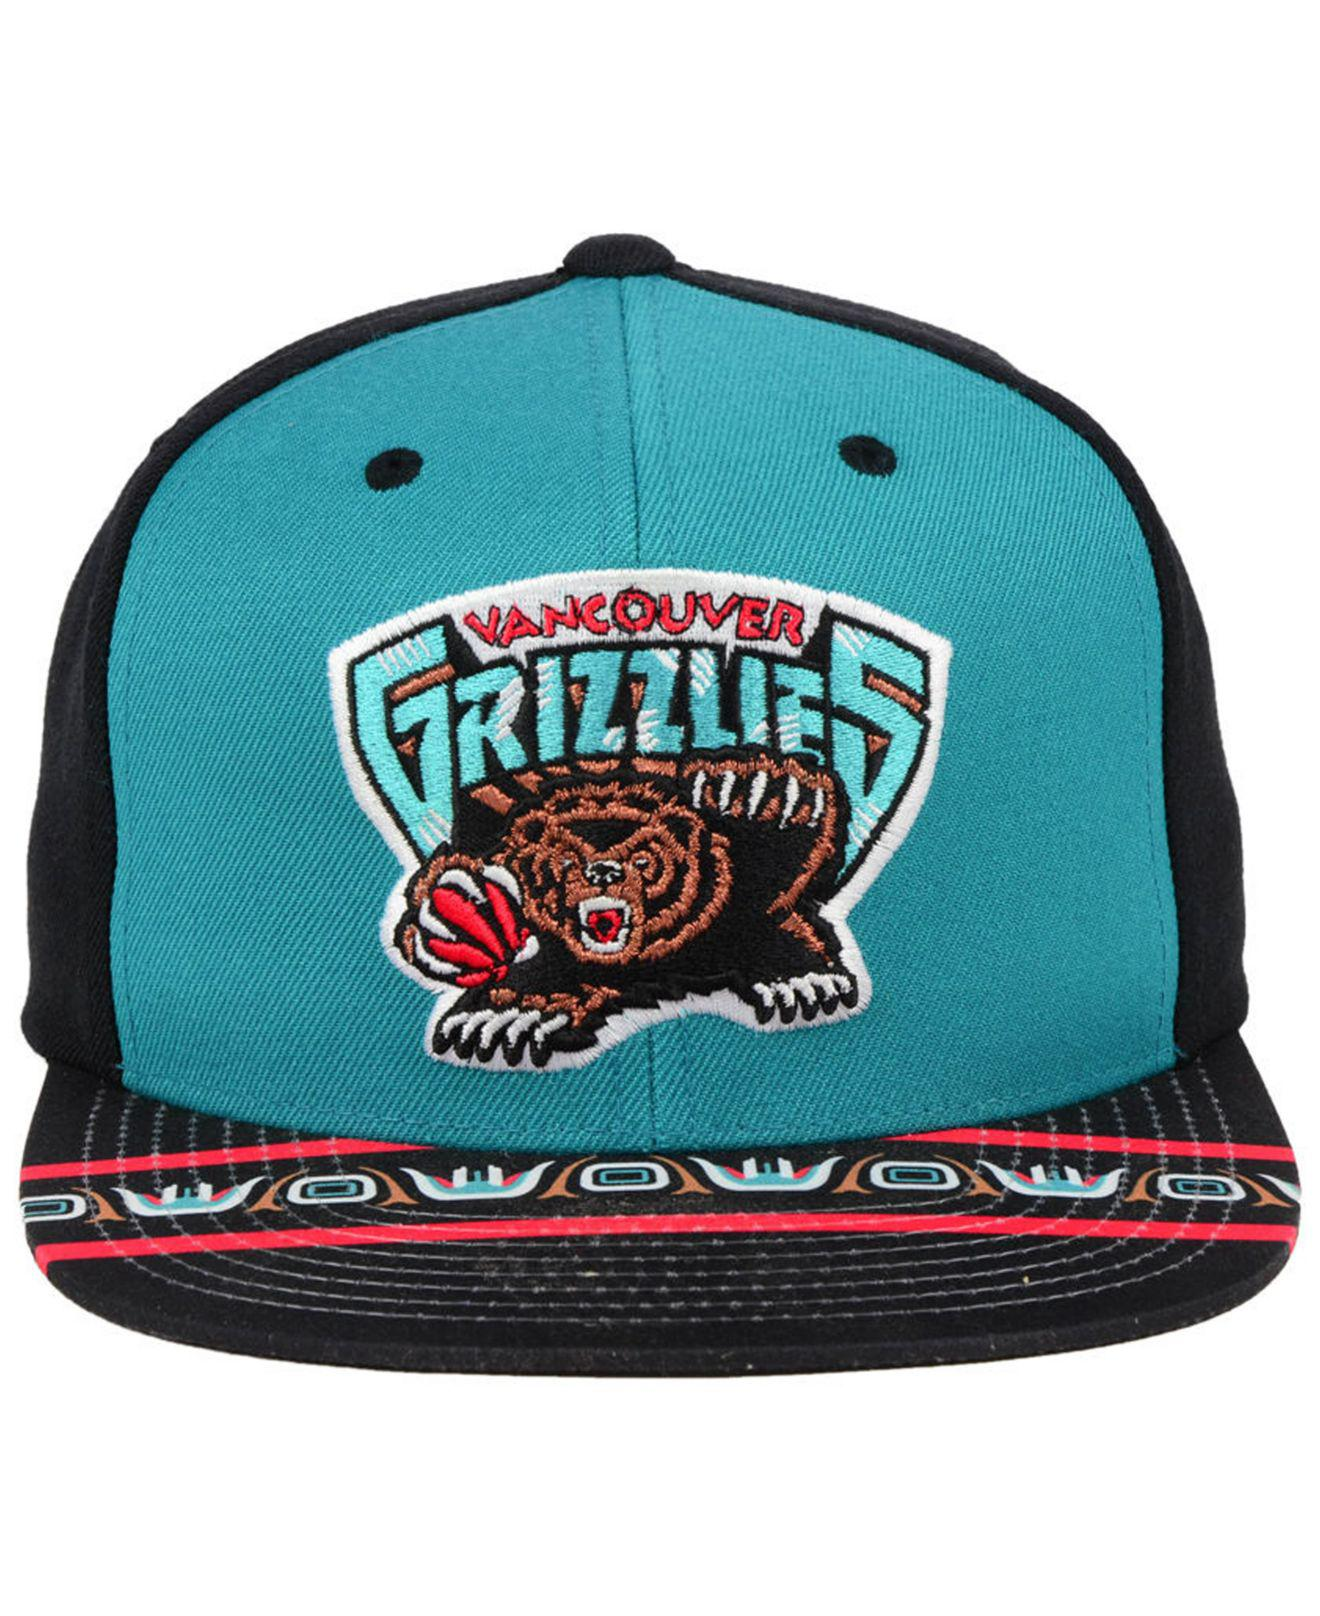 new concept d6ff7 cb128 Mitchell   Ness Vancouver Grizzlies Winning Team Snapback Cap for ...